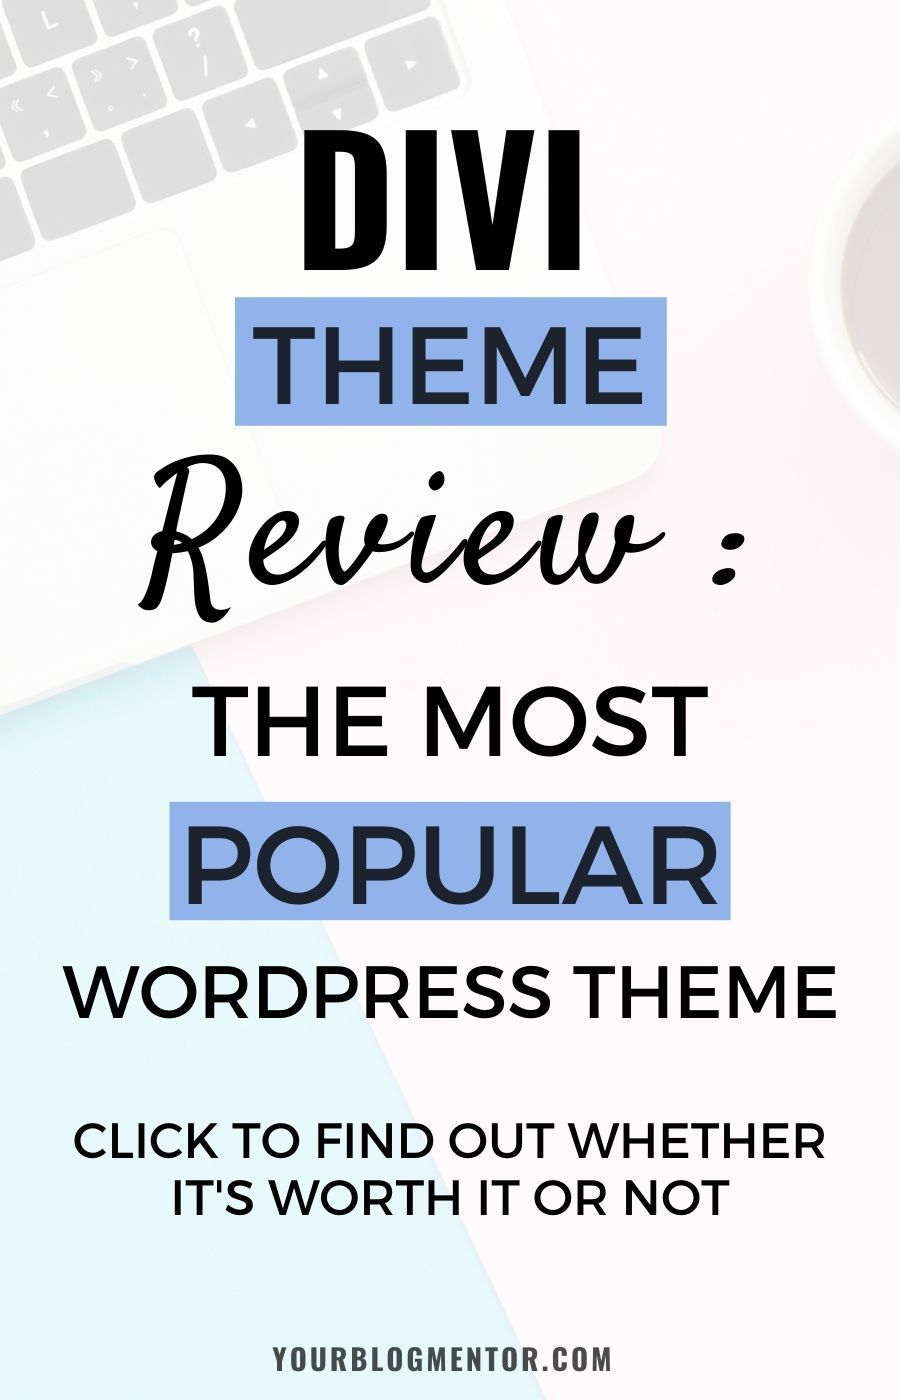 Divi Theme Review How To Design A Gorgeous Website Wordpress Wordpress Theme How To Find Out